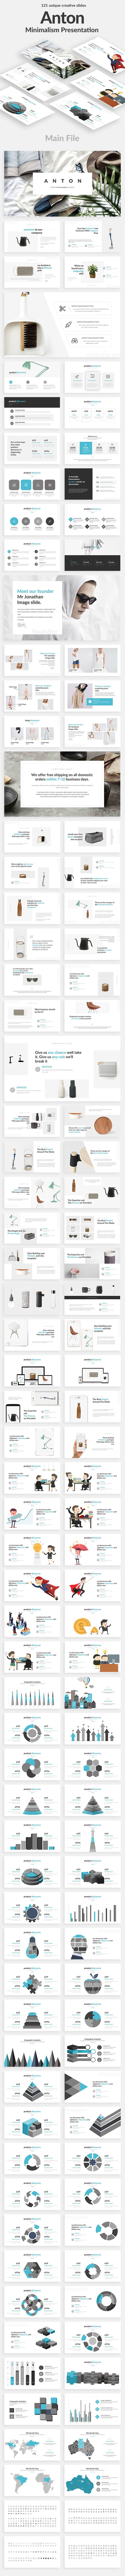 Anton Minimalism Powerpoint Template — Powerpoint PPT #sale #clean • Available here ➝ https://graphicriver.net/item/anton-minimalism-powerpoint-template/20735035?ref=pxcr